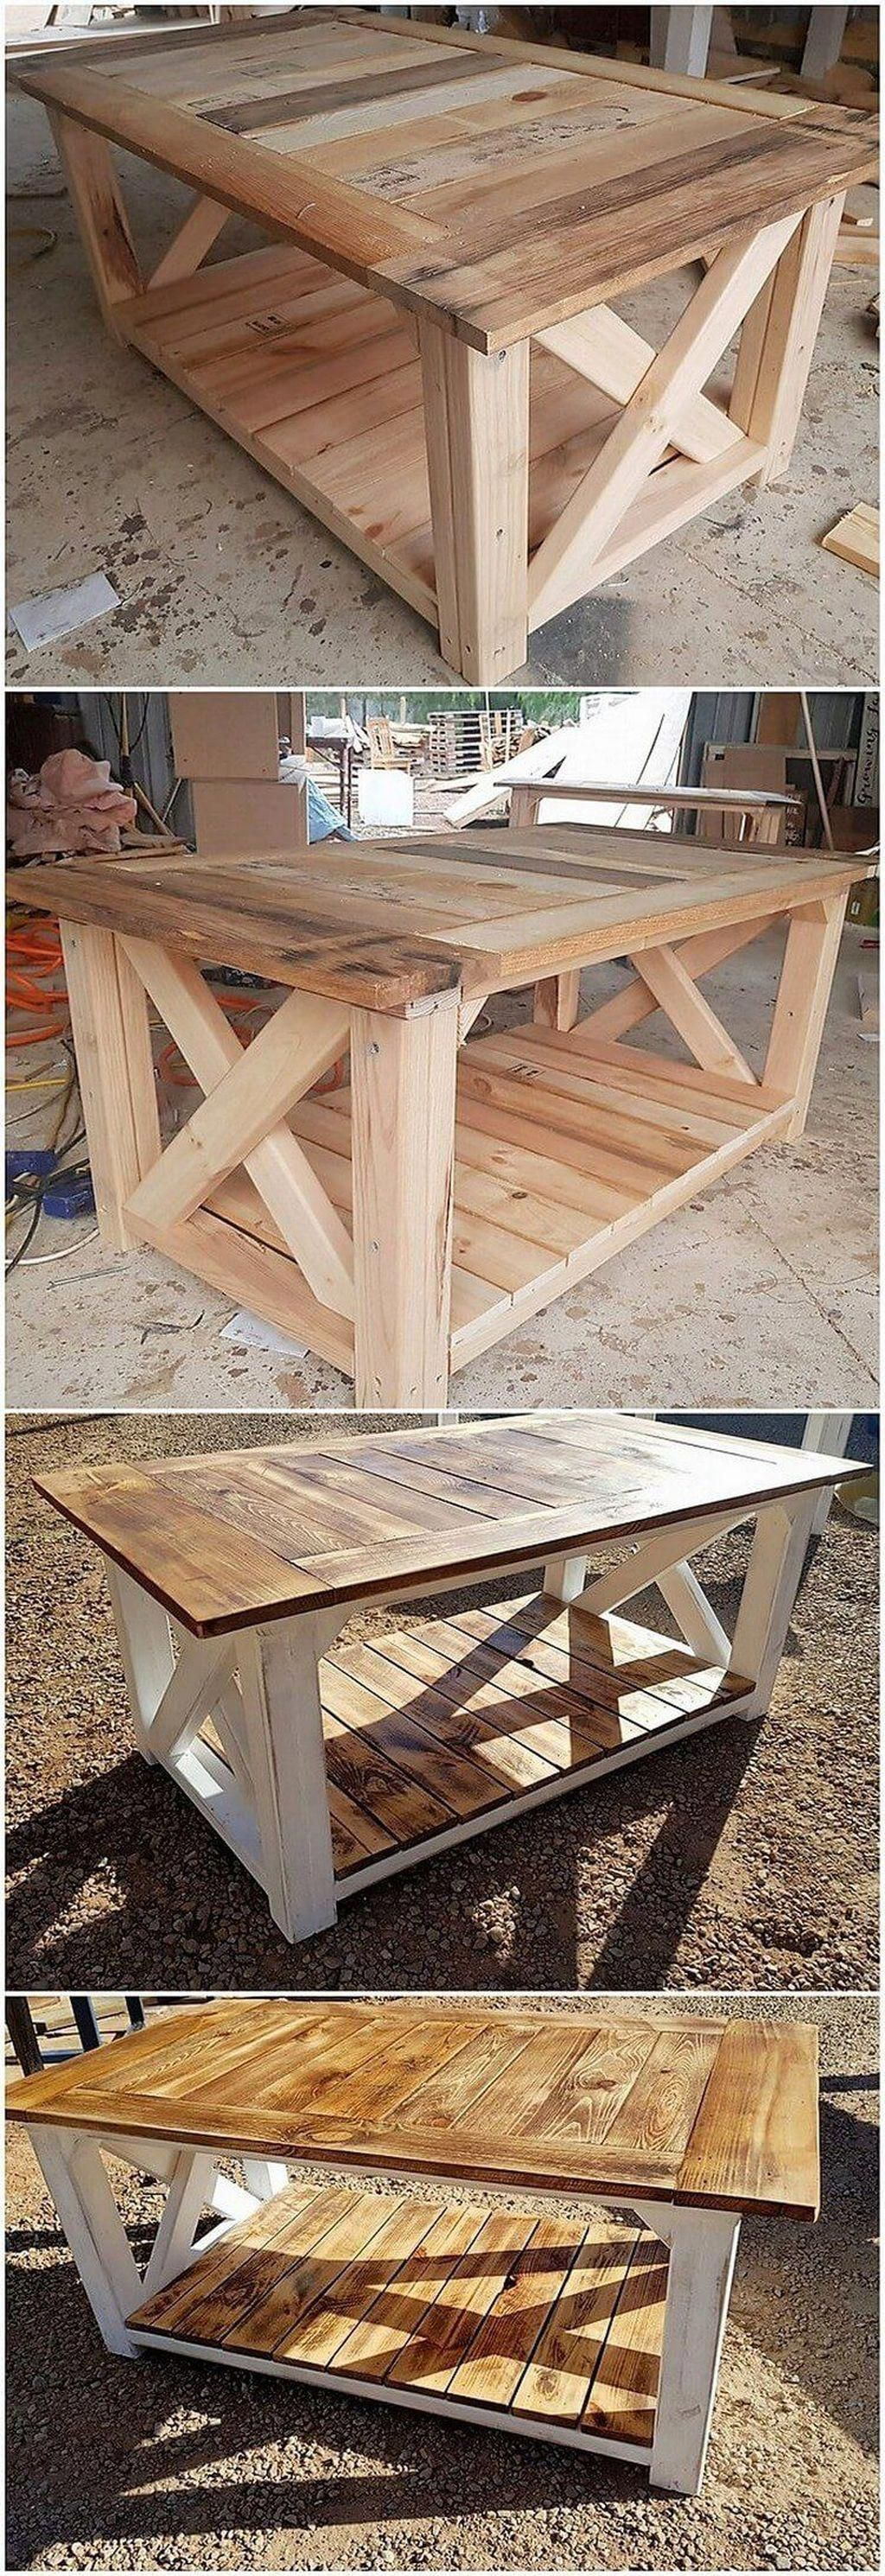 20 amazing diy wood project ideas for your house are on useful diy wood project ideas beginner woodworking plans id=56094